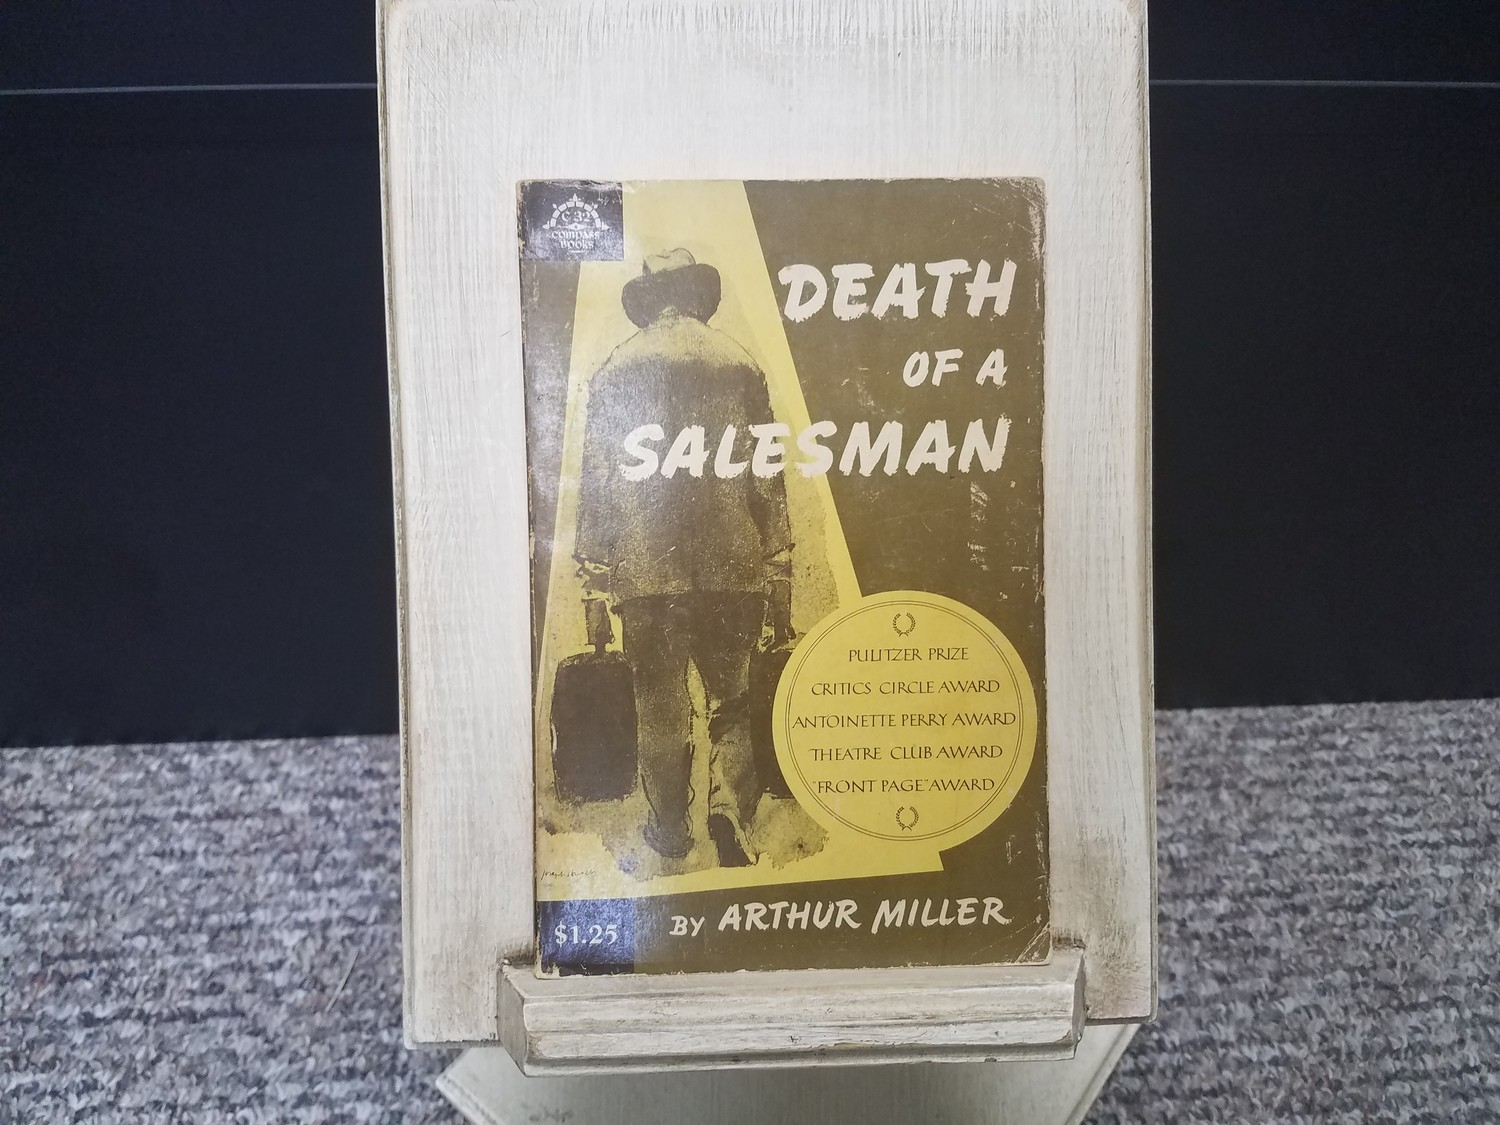 The Death of a Salesman by Arthur Miller